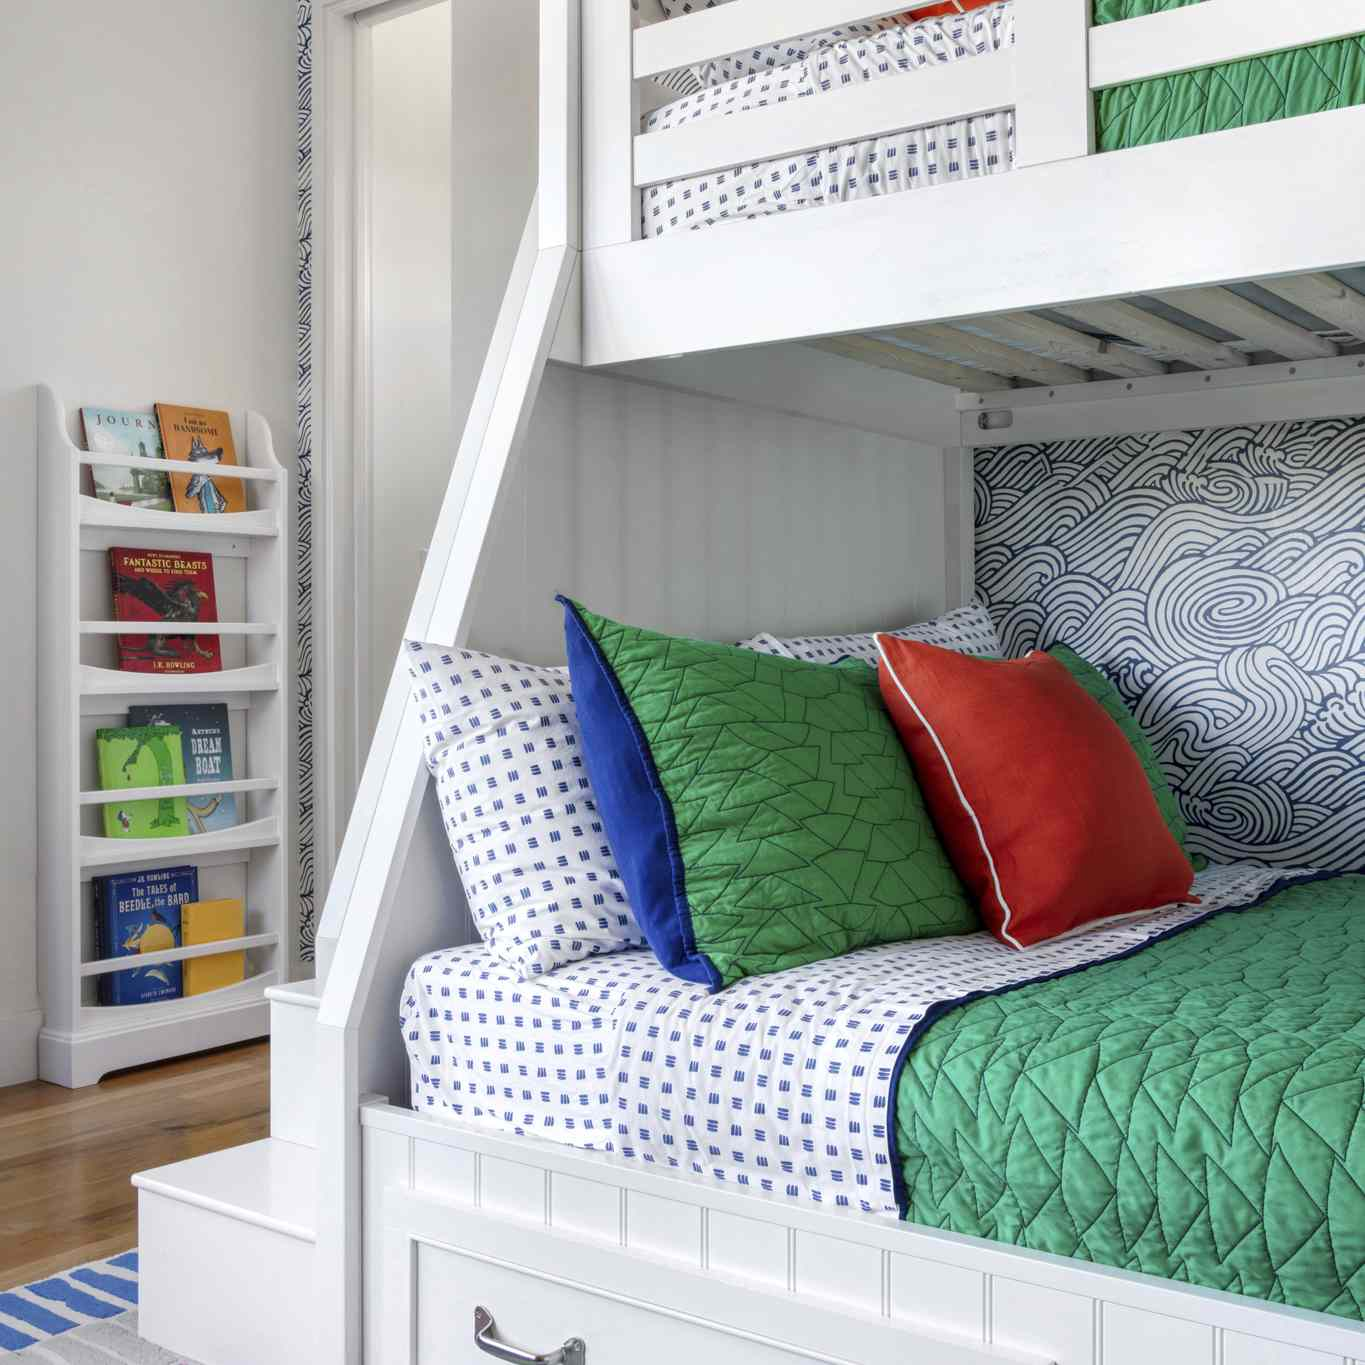 swirly blue-and-white wallpaper in this kid bedroom featuring a bunk bed and primary colors